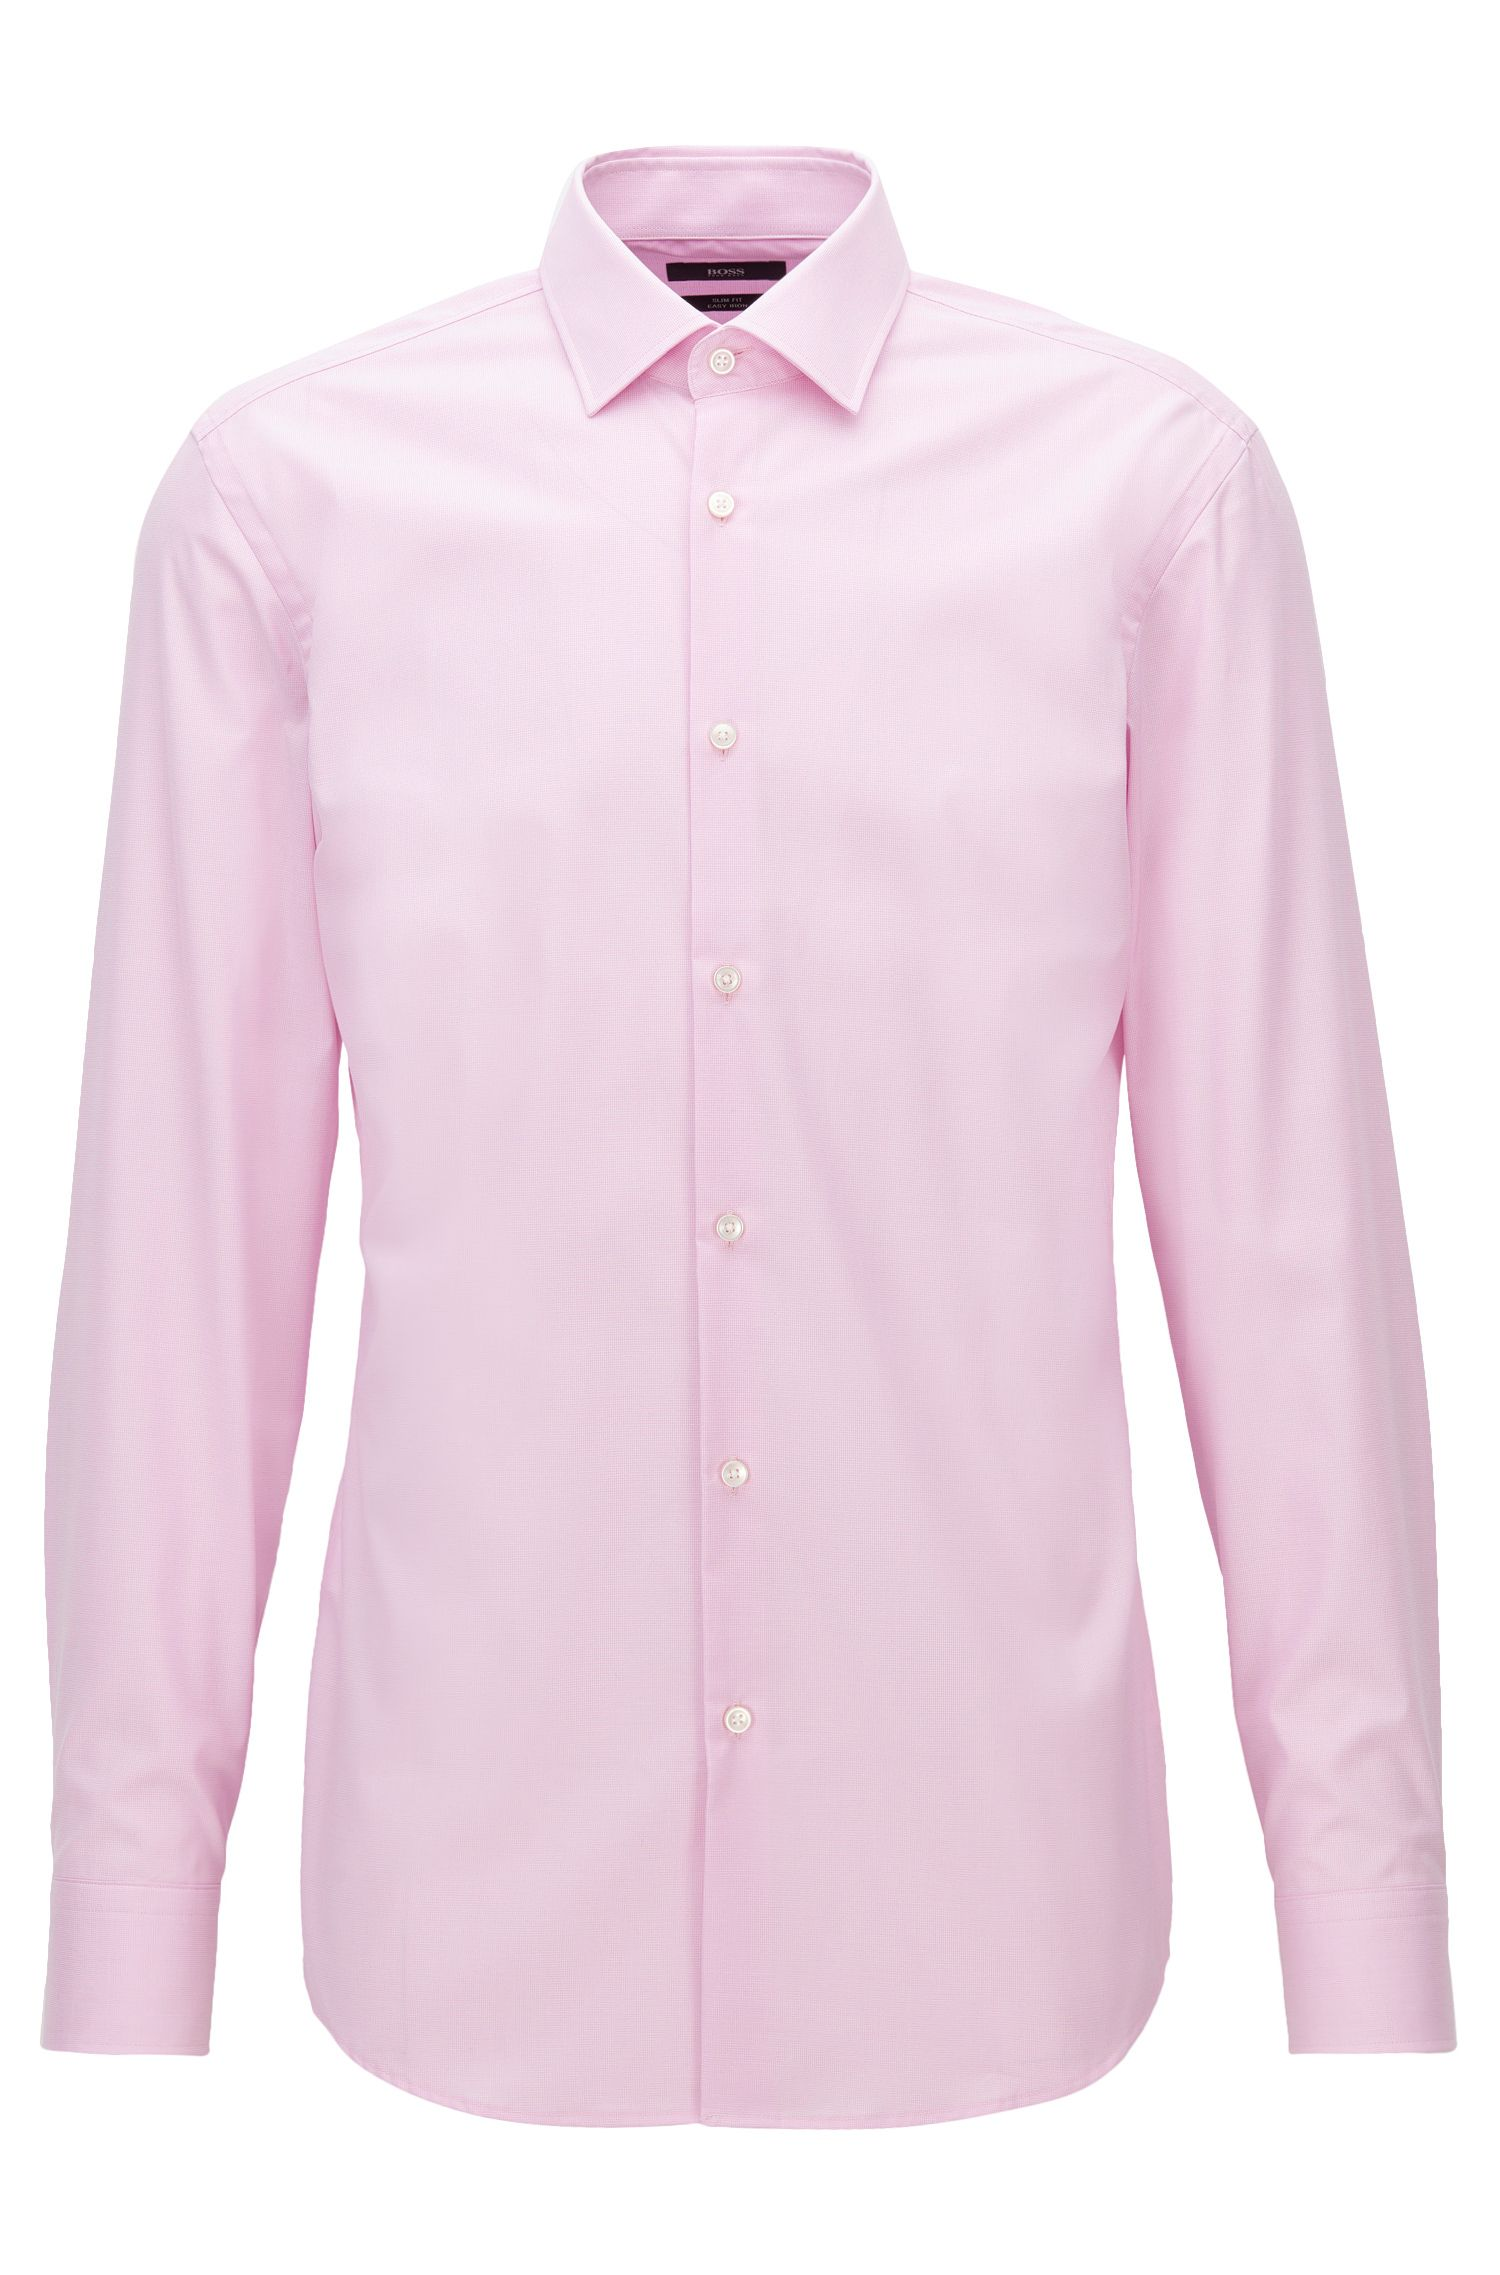 Finely checked cotton shirt in a slim fit